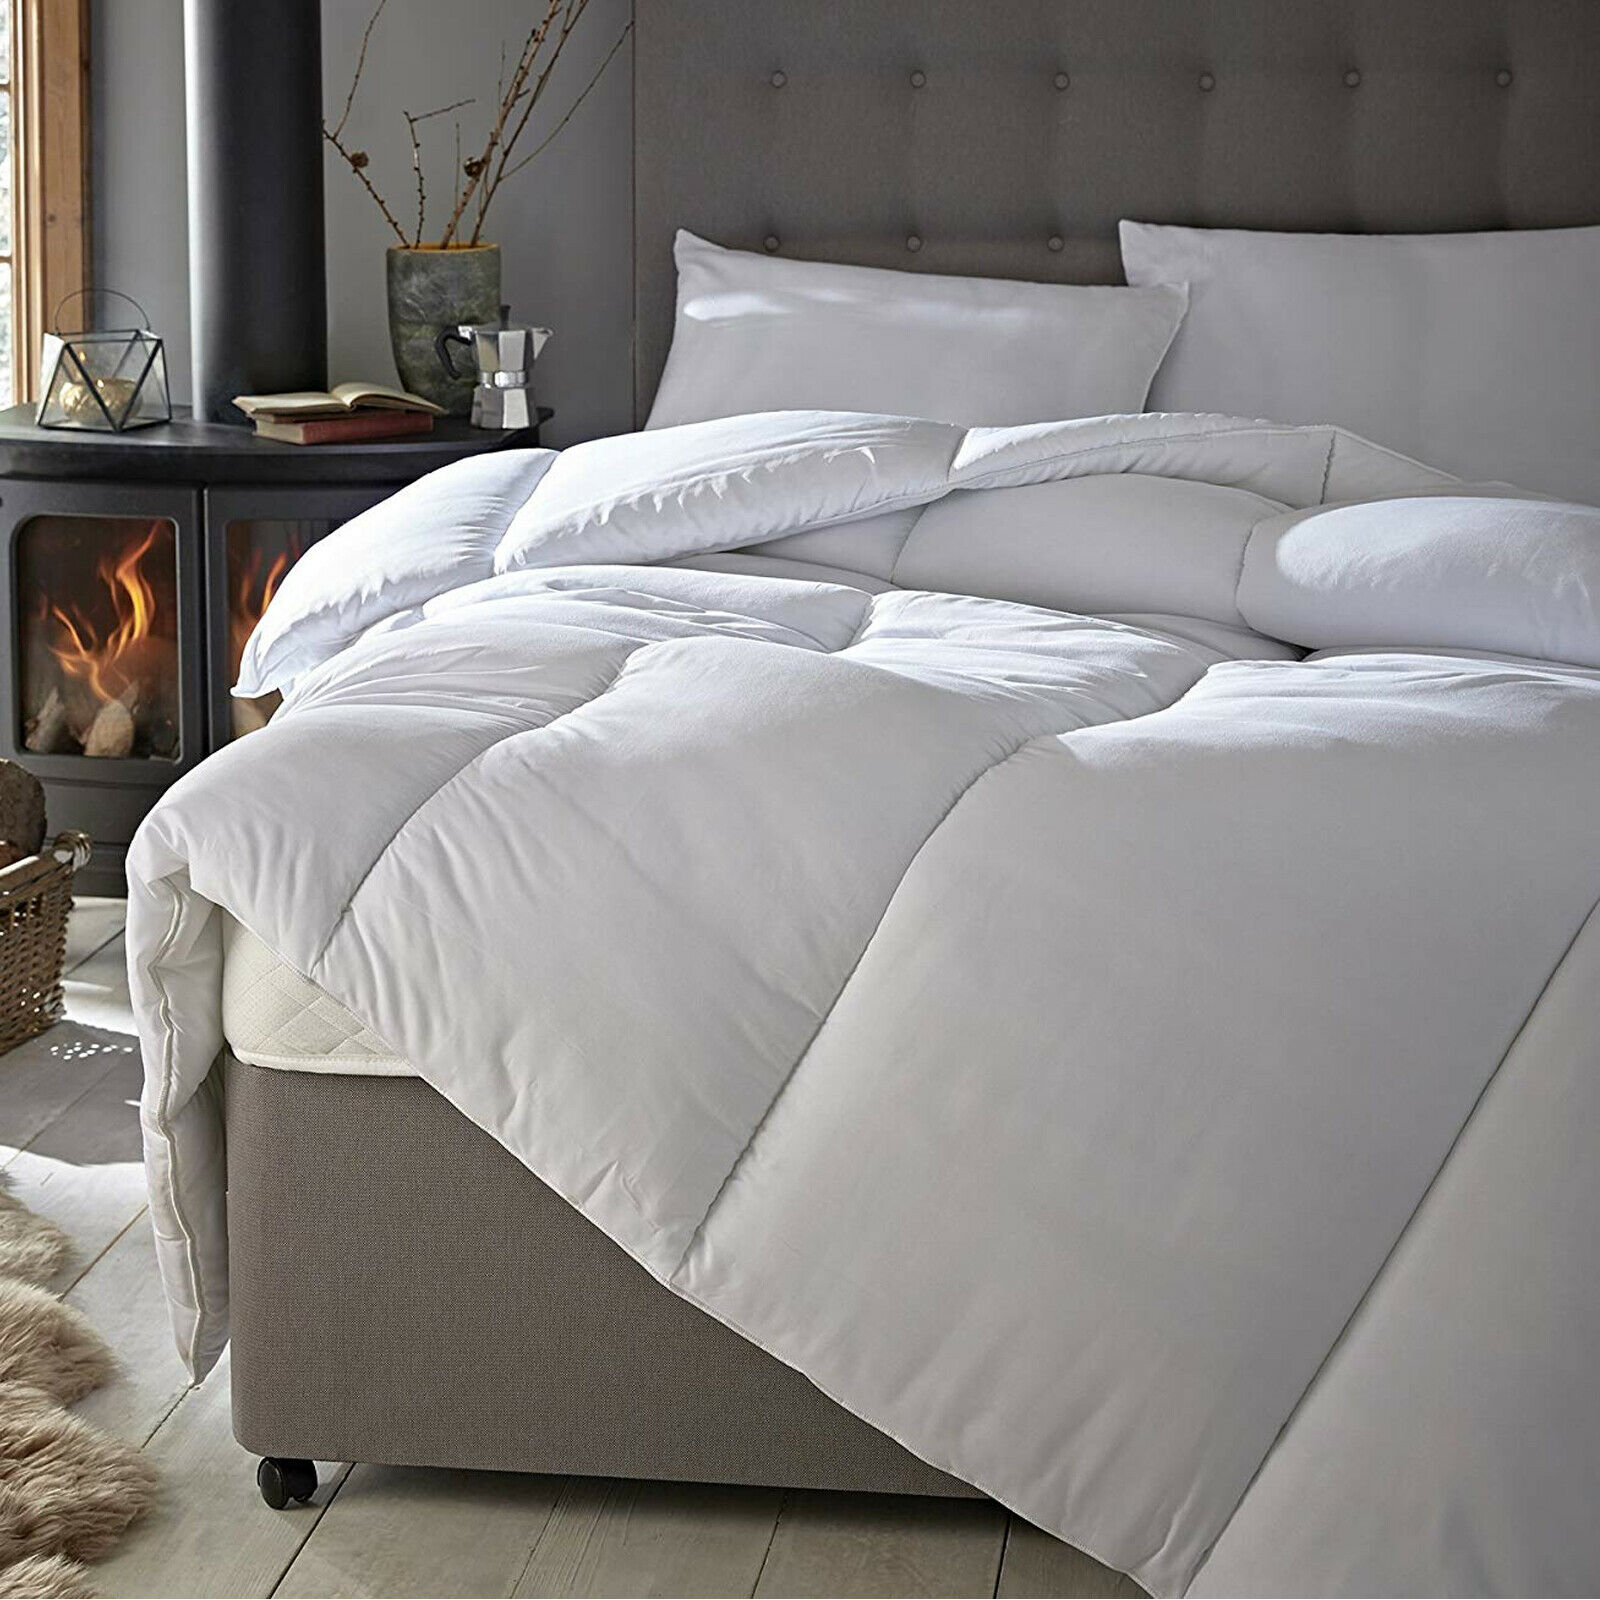 Anti Allergy Duvet Extra Fluffy Hollowfibre Quilts All Seasons Duvets 40/% OFF RP